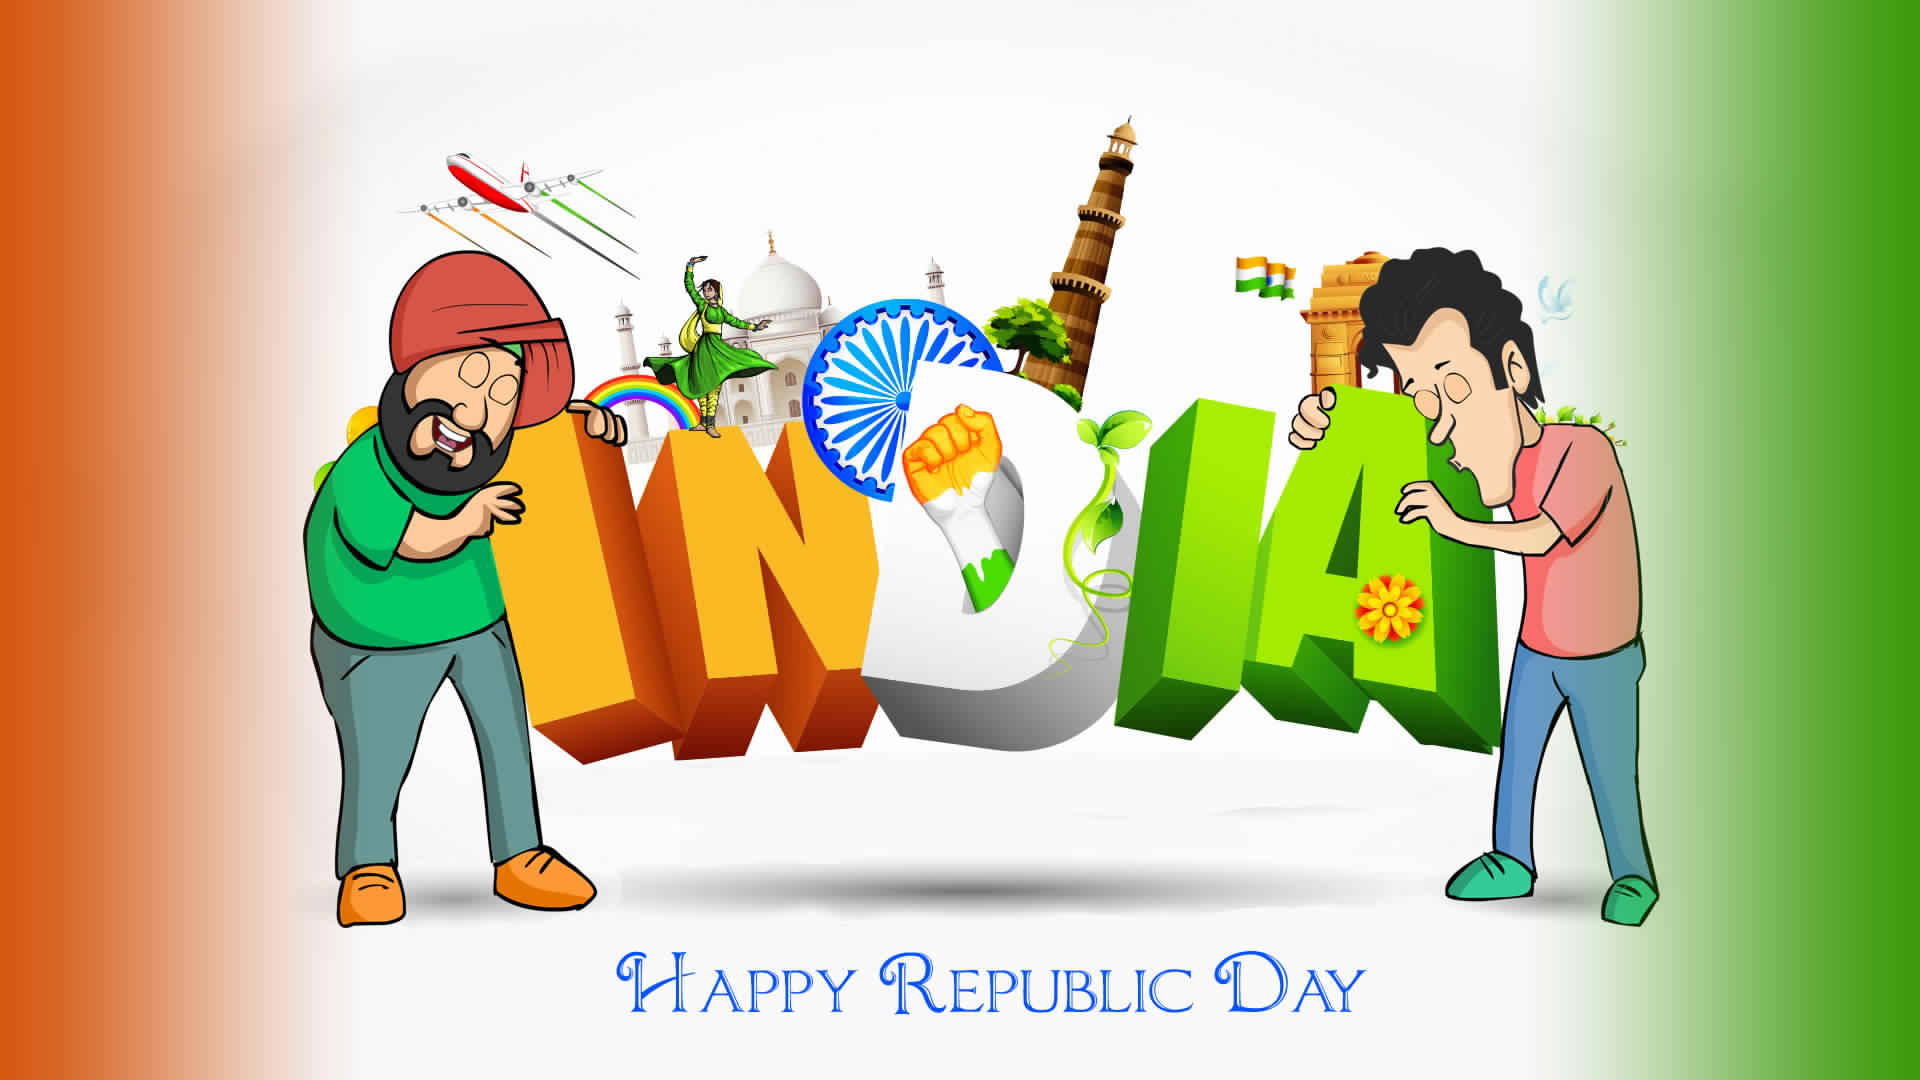 Republic Day Hd Wallpaper For Facebook Dp Free Download